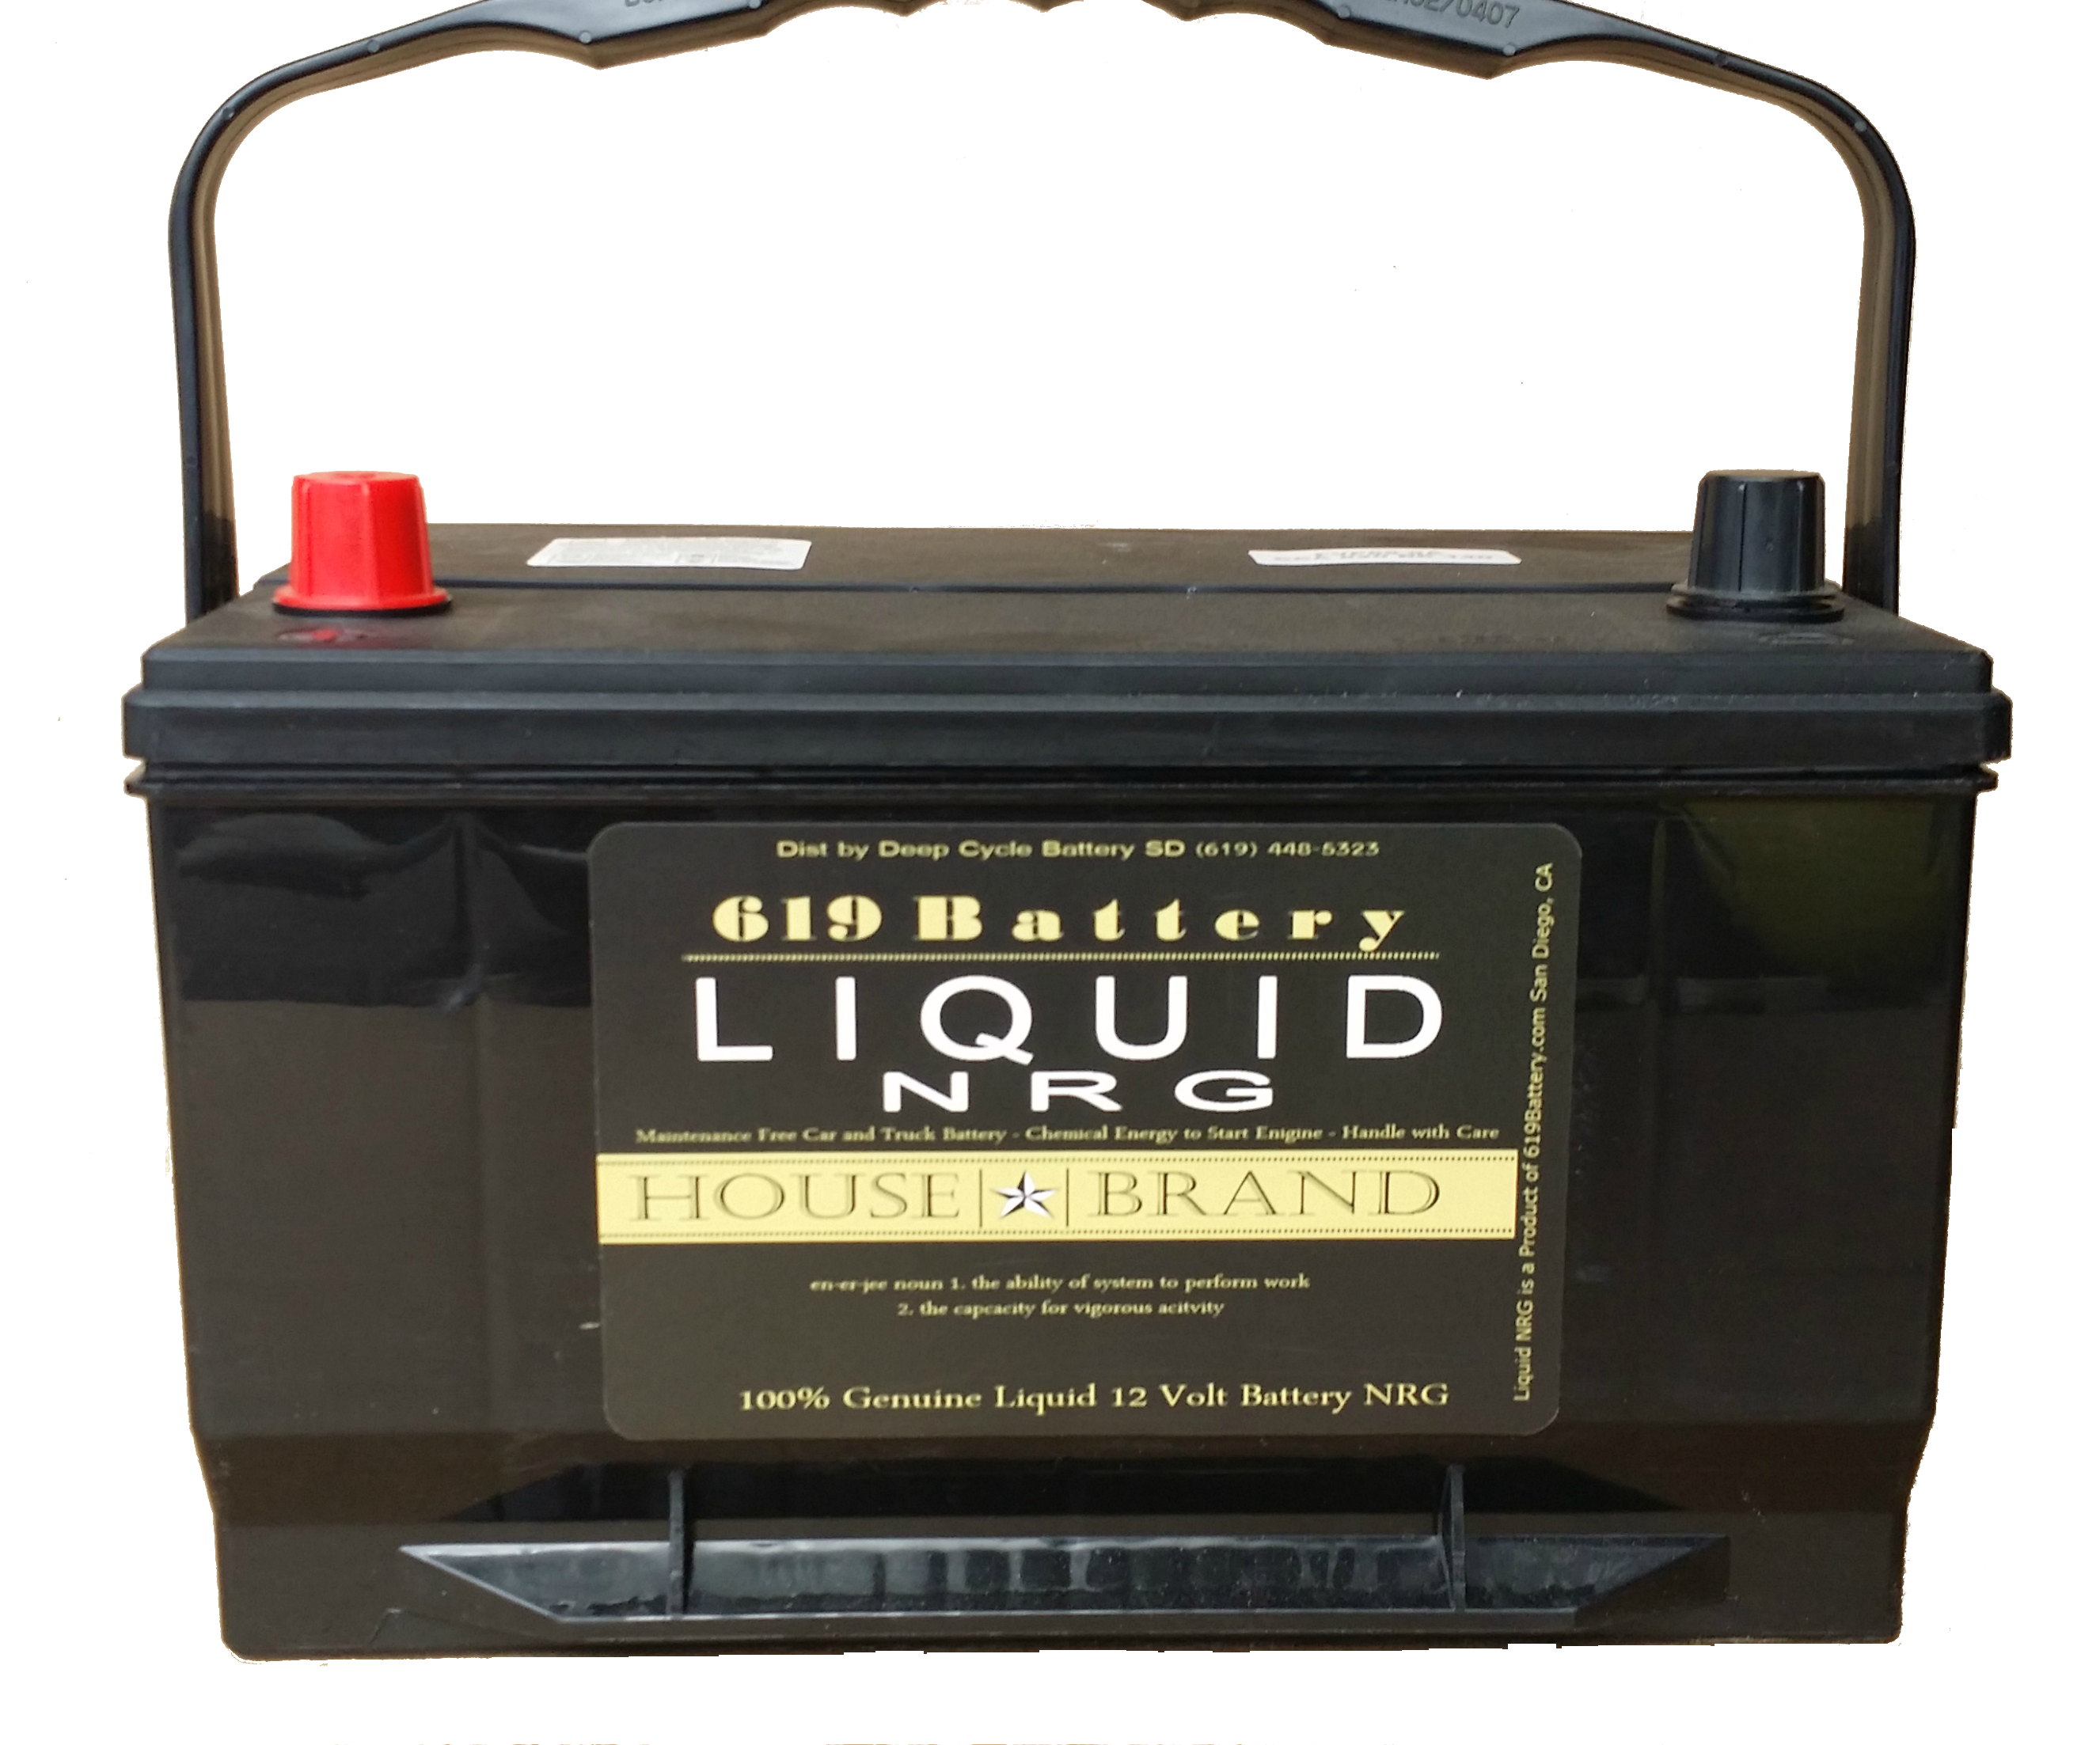 New Affordable Truck Batteries For 80 Ea Plus Tax With Exchange 24 Month Battery Warranty